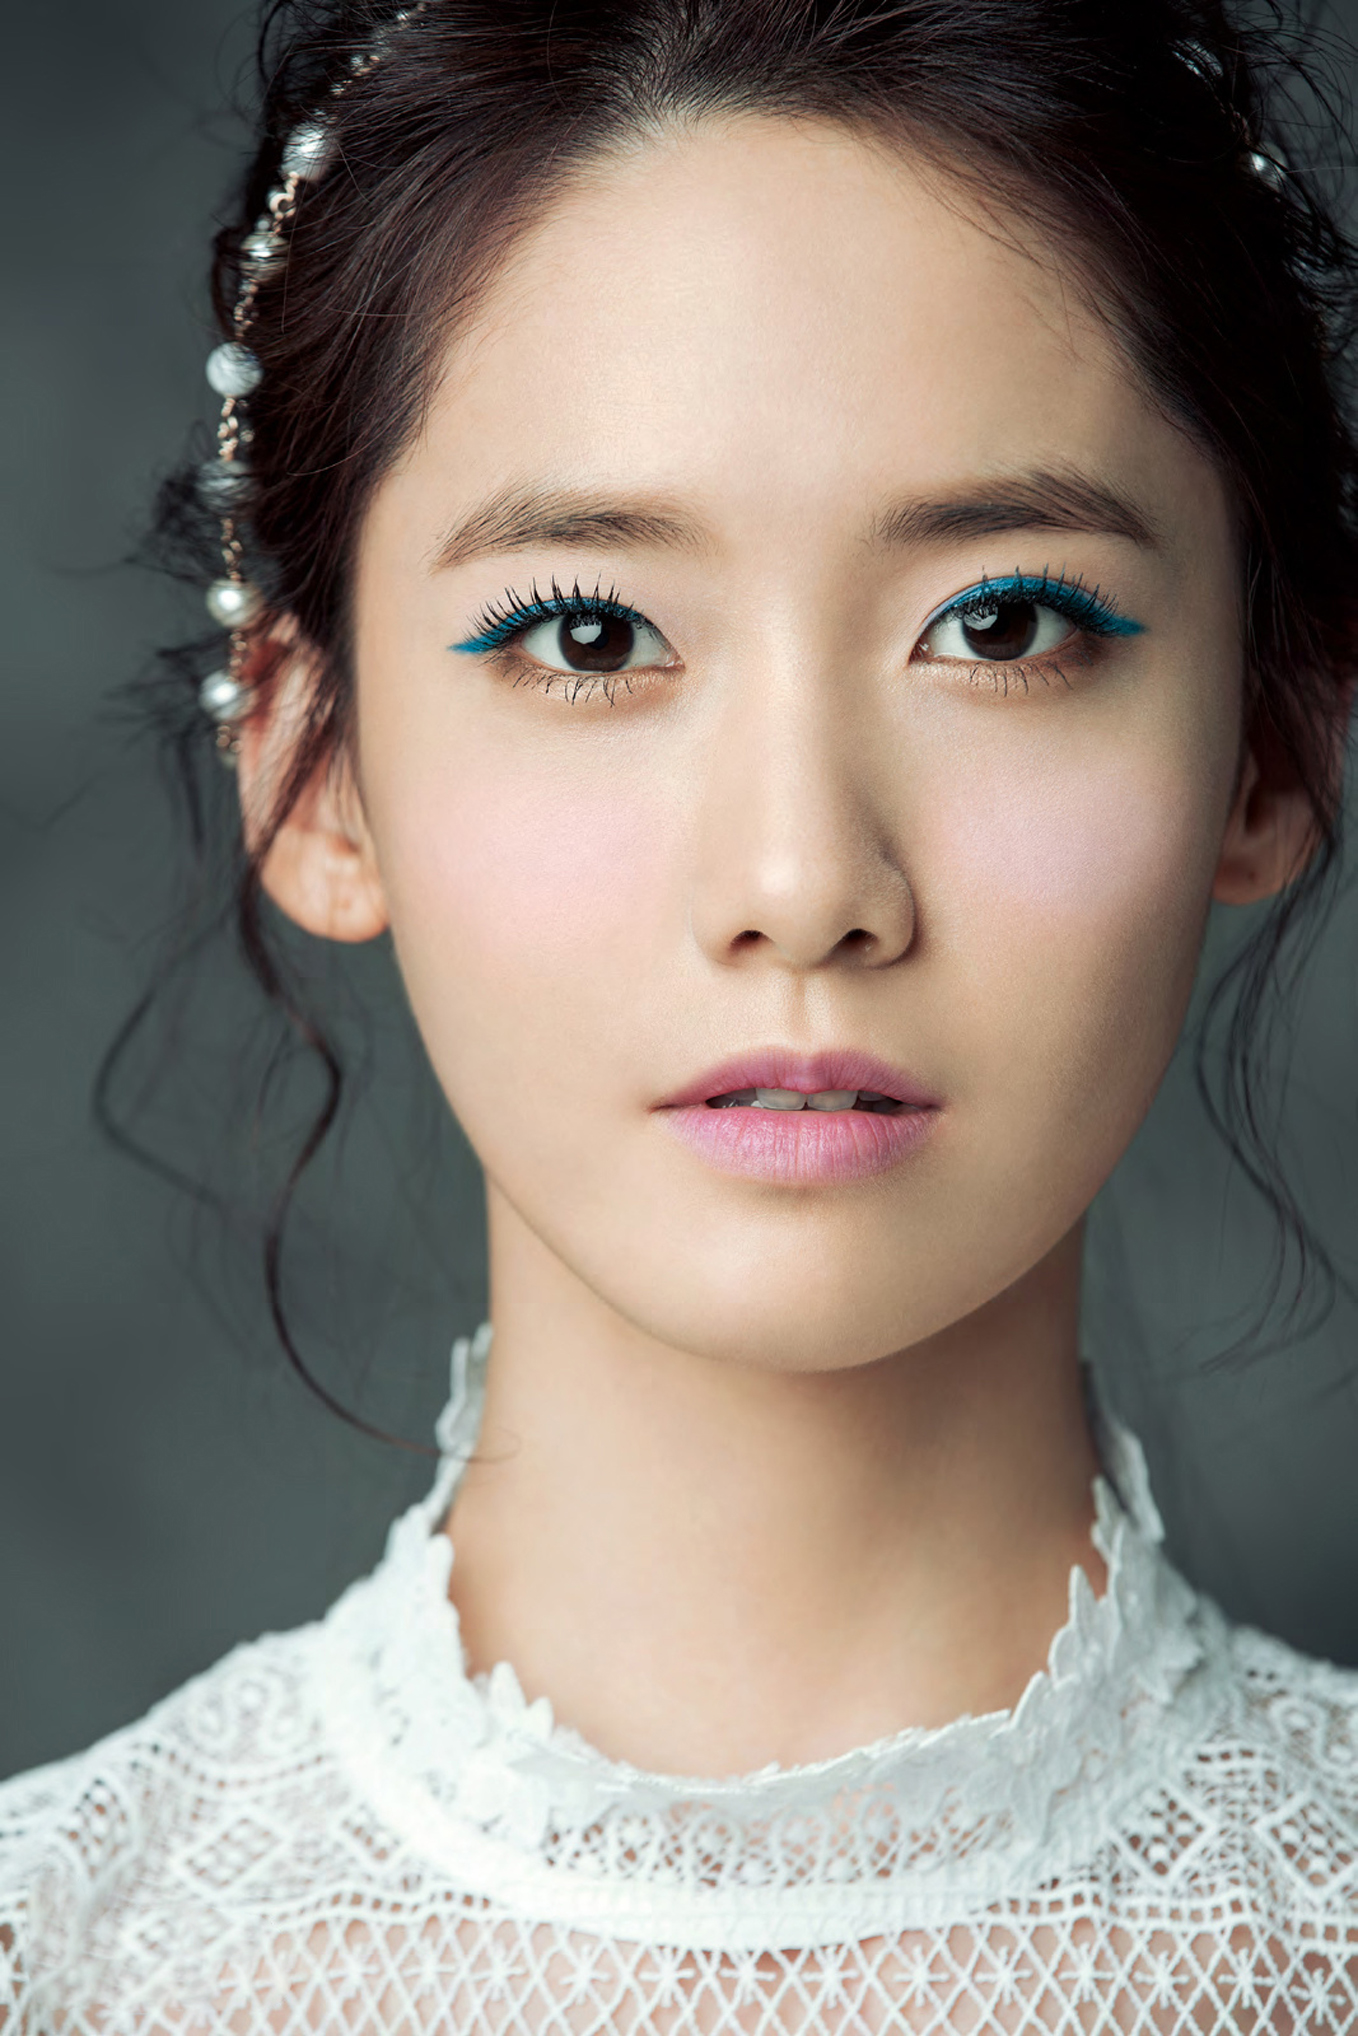 Yoona for ELLE Korea April 2015